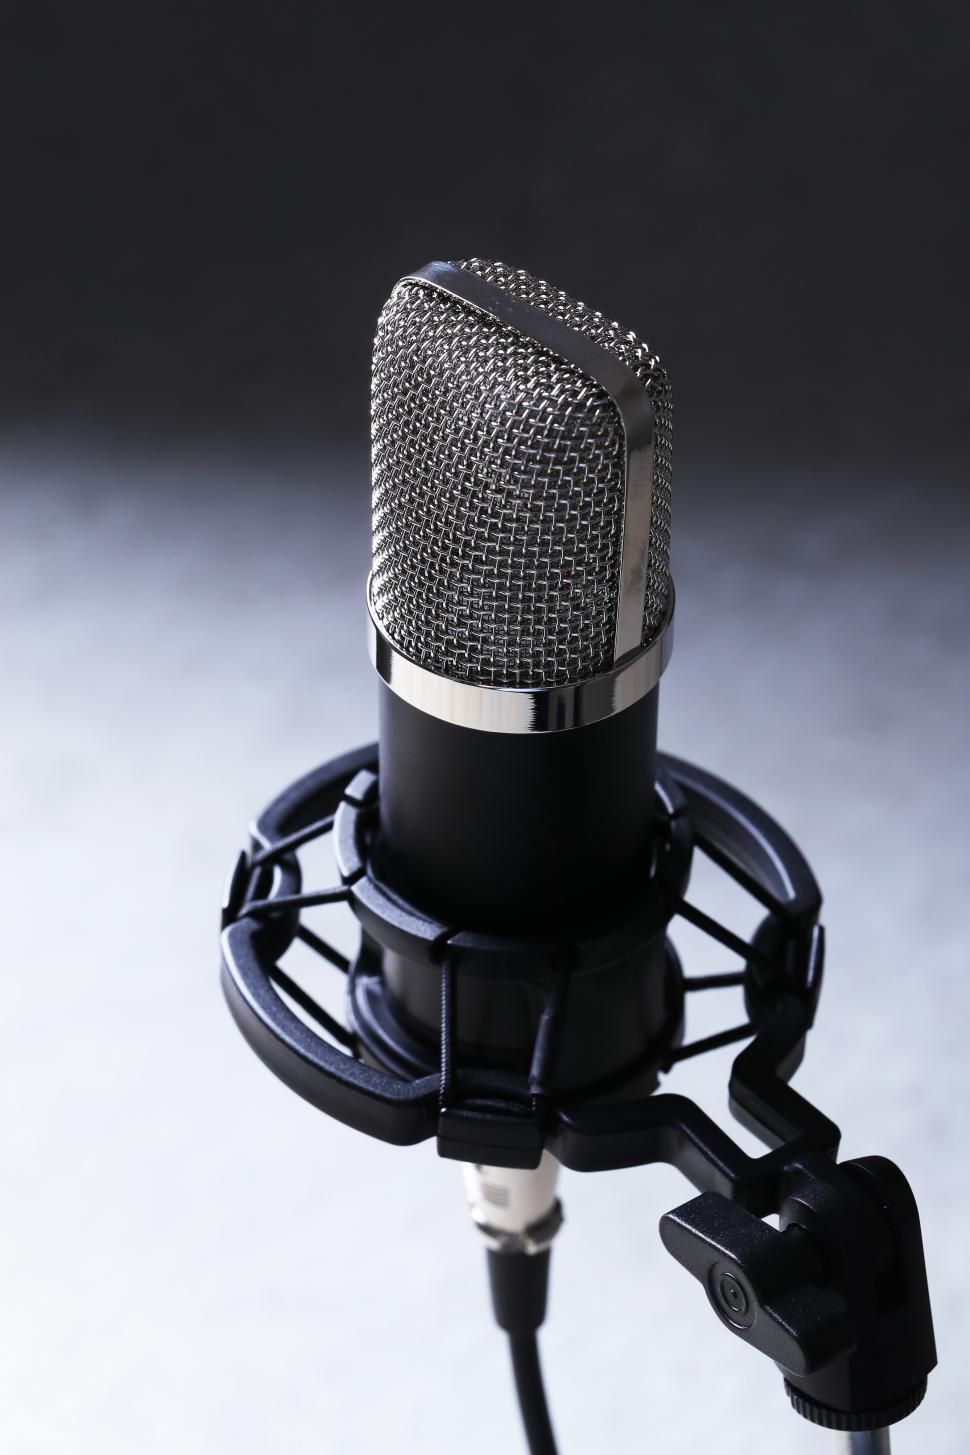 Download Free Stock Photo of Microphone